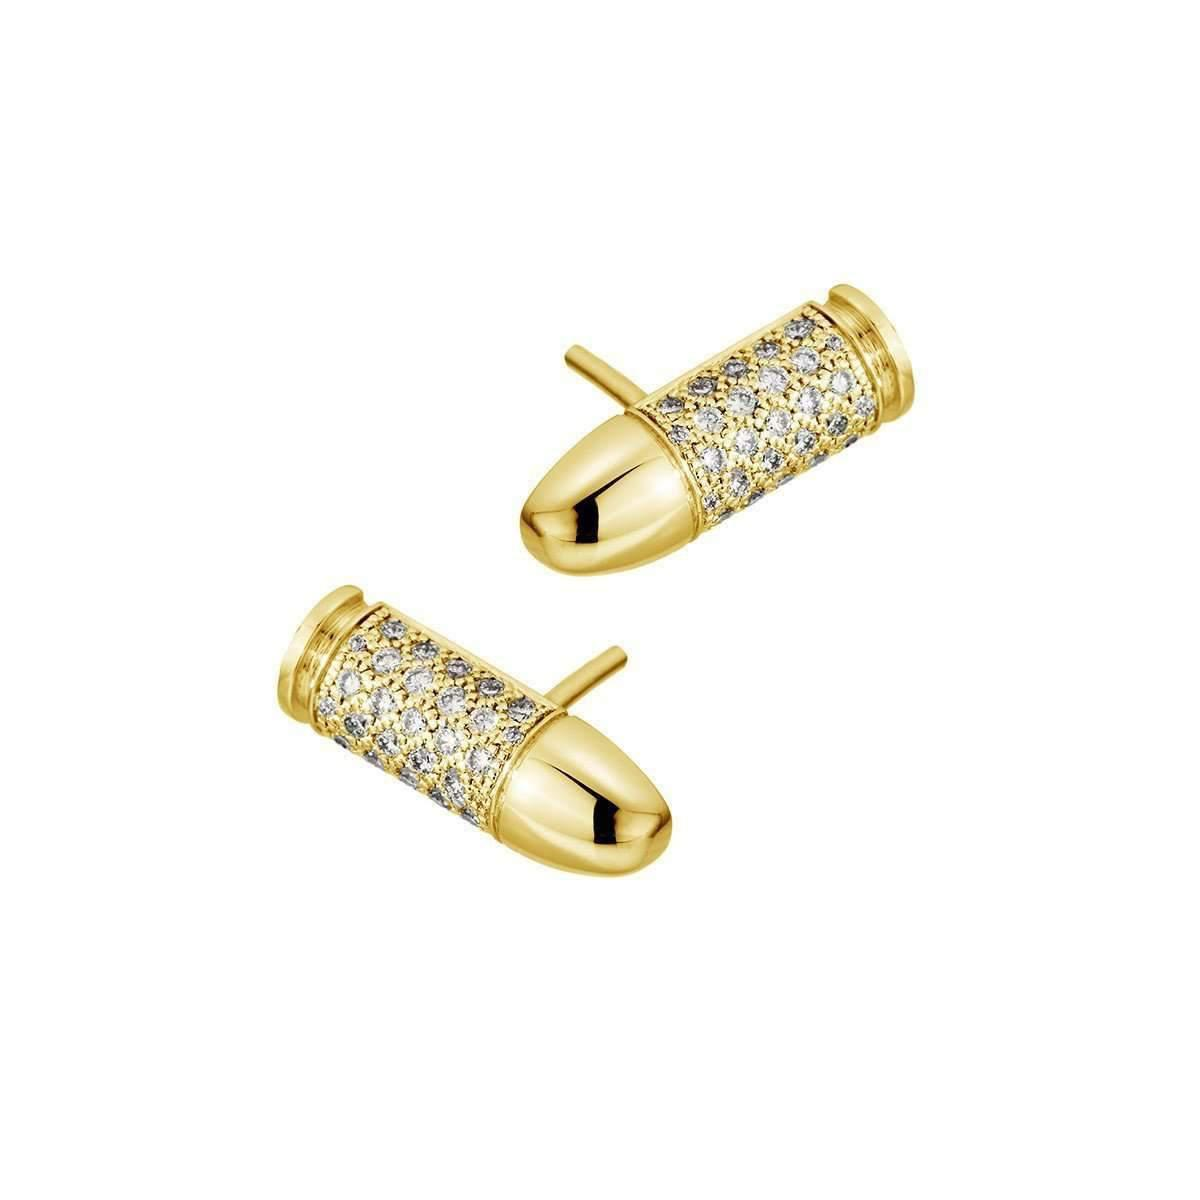 Akillis Mini Puzzle Yellow Gold Clip Earrings XTi3tNd